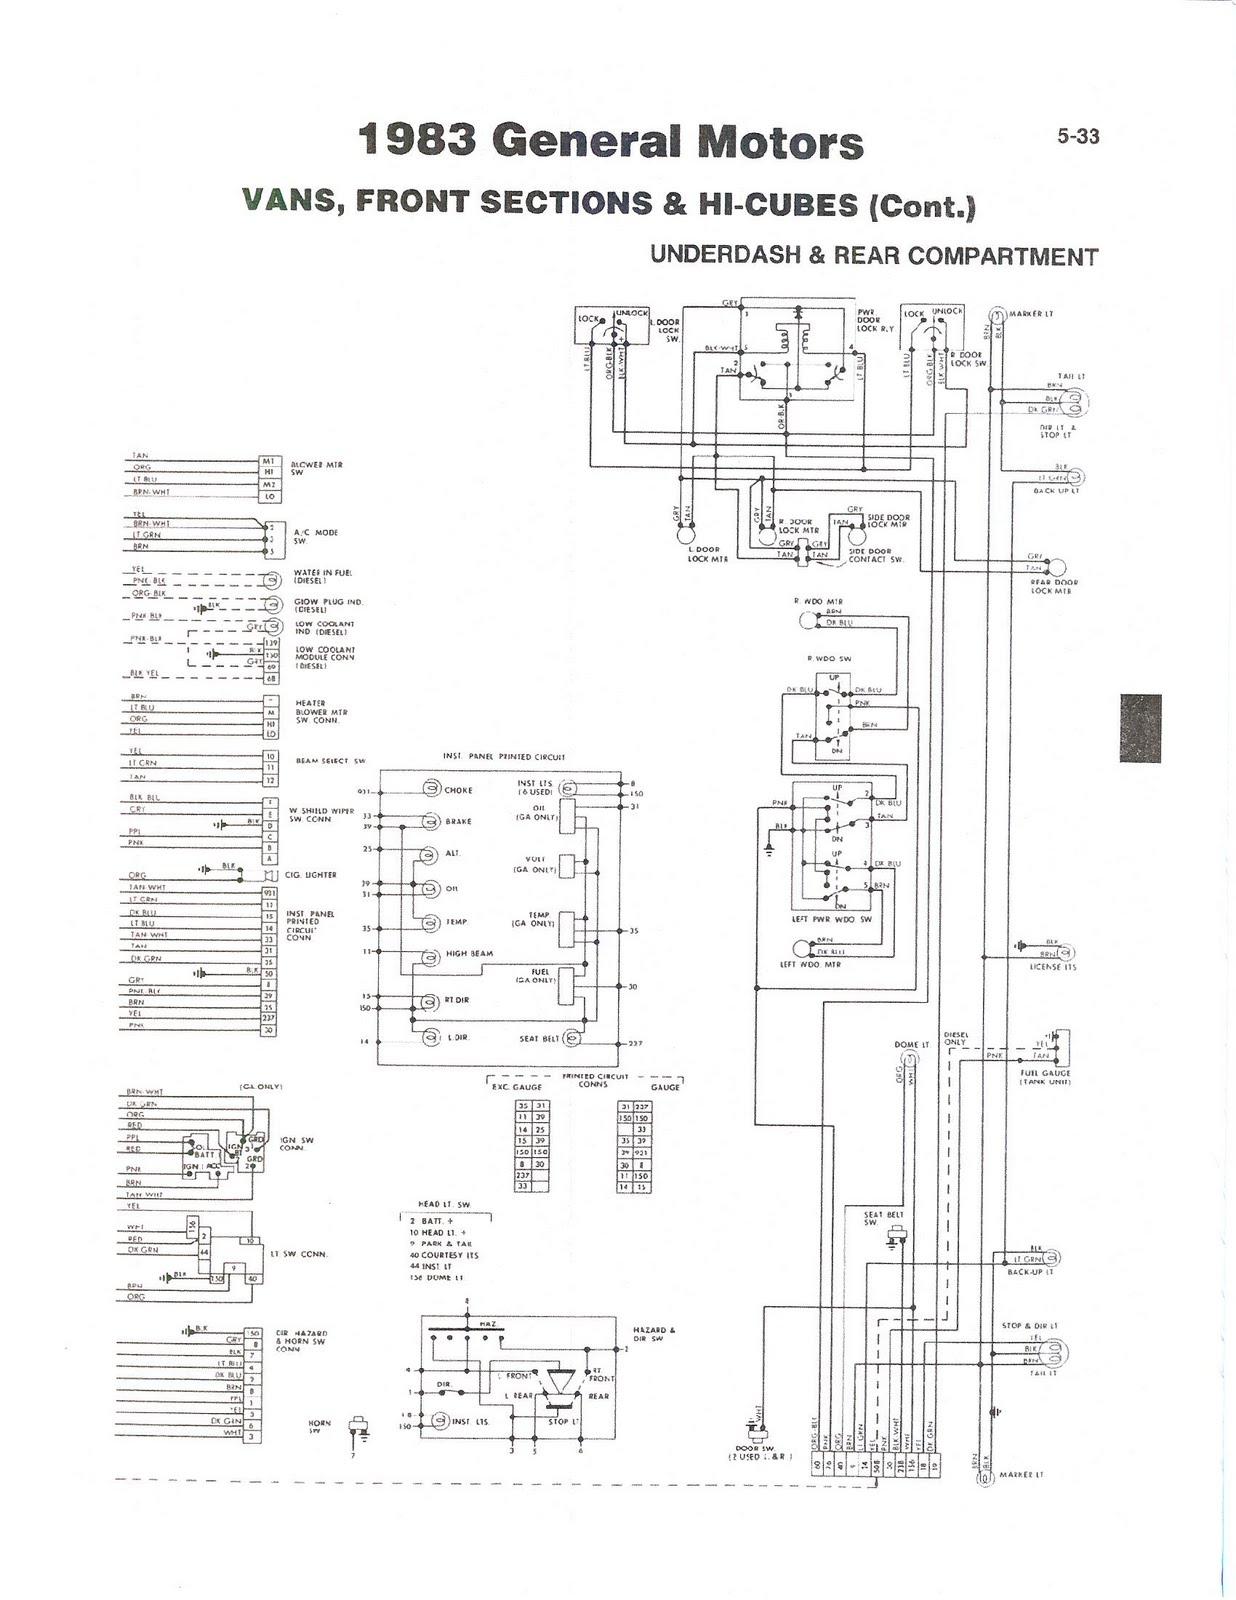 P30 Ecu Wiring Diagram Guide And Troubleshooting Of 97 Econoline Van Fuse Library Rh 34 Pirmasens Land Eu Pinout 1995